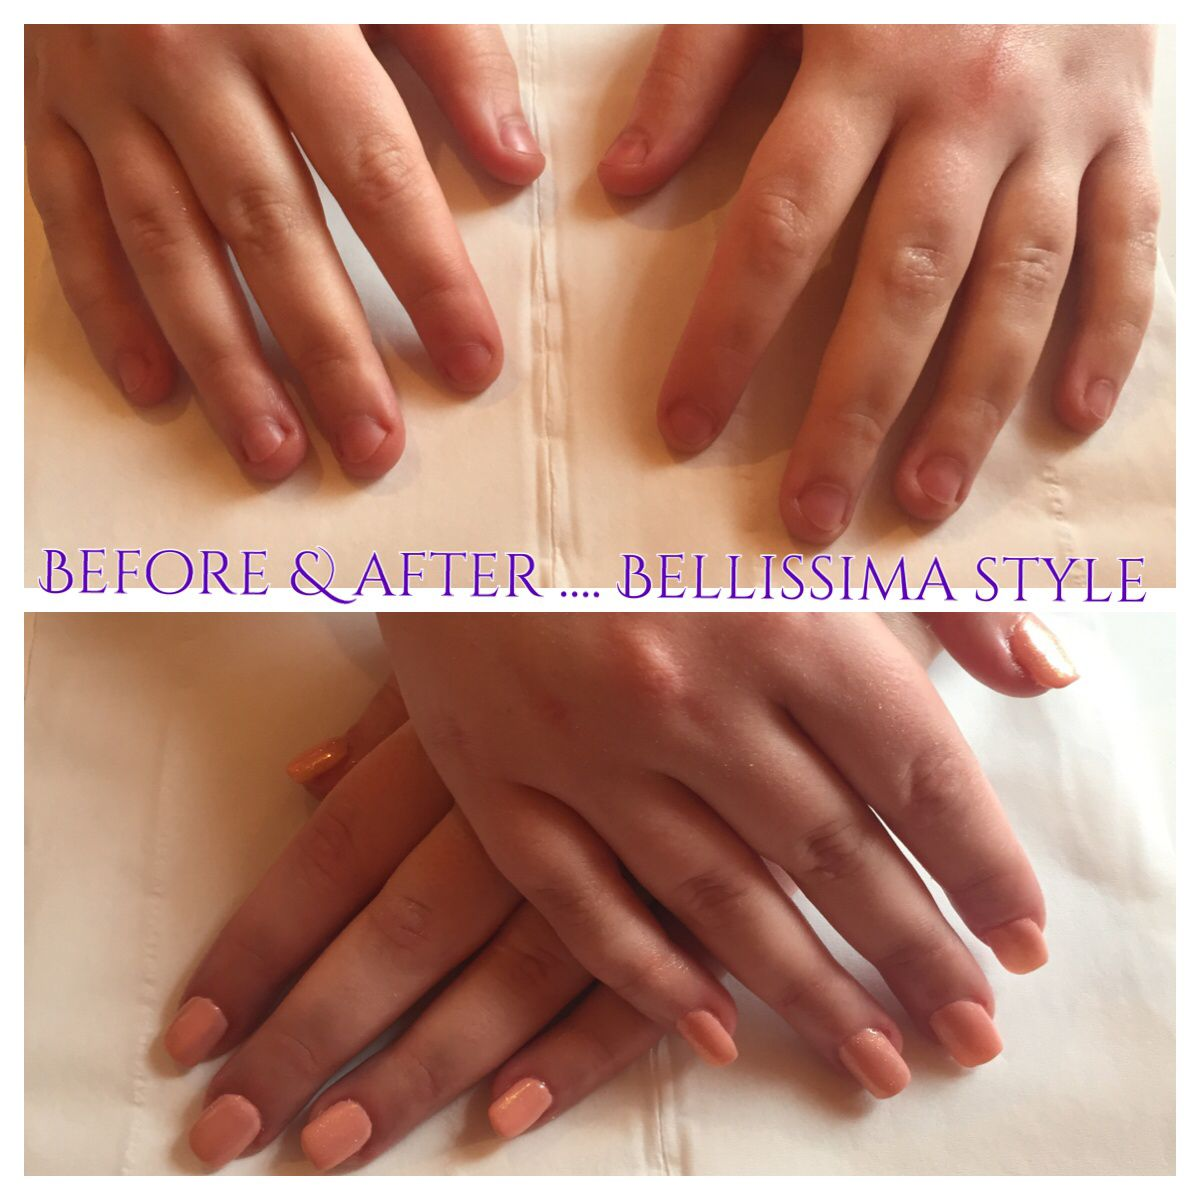 Persistent Nail Biter Before After Cnd Acrylic Sculpt Enhancements With Shellac Manicure To